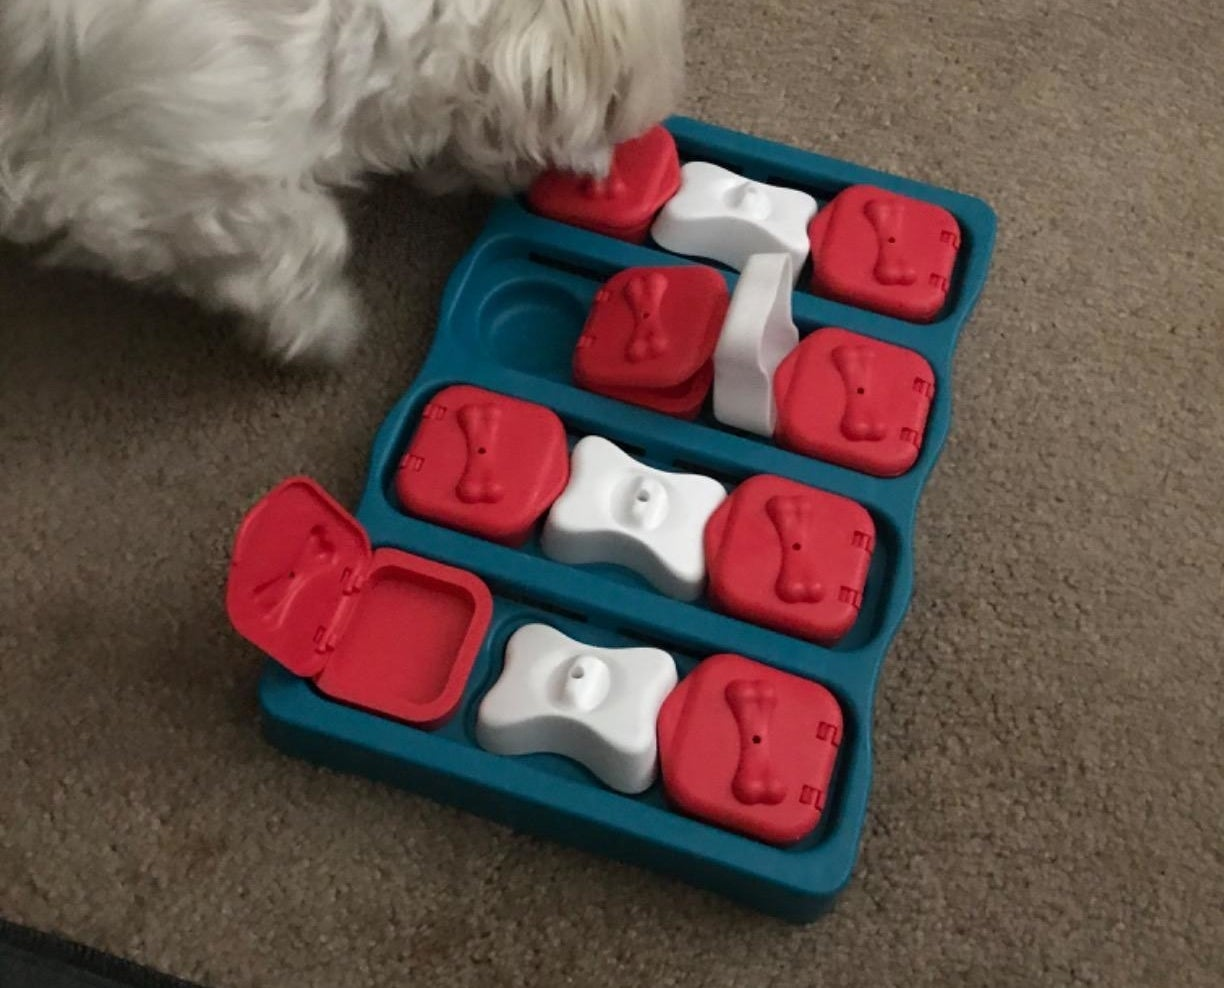 white maltipoo using the activity box, which has red and white bone-shaped compartments that move and hold treats